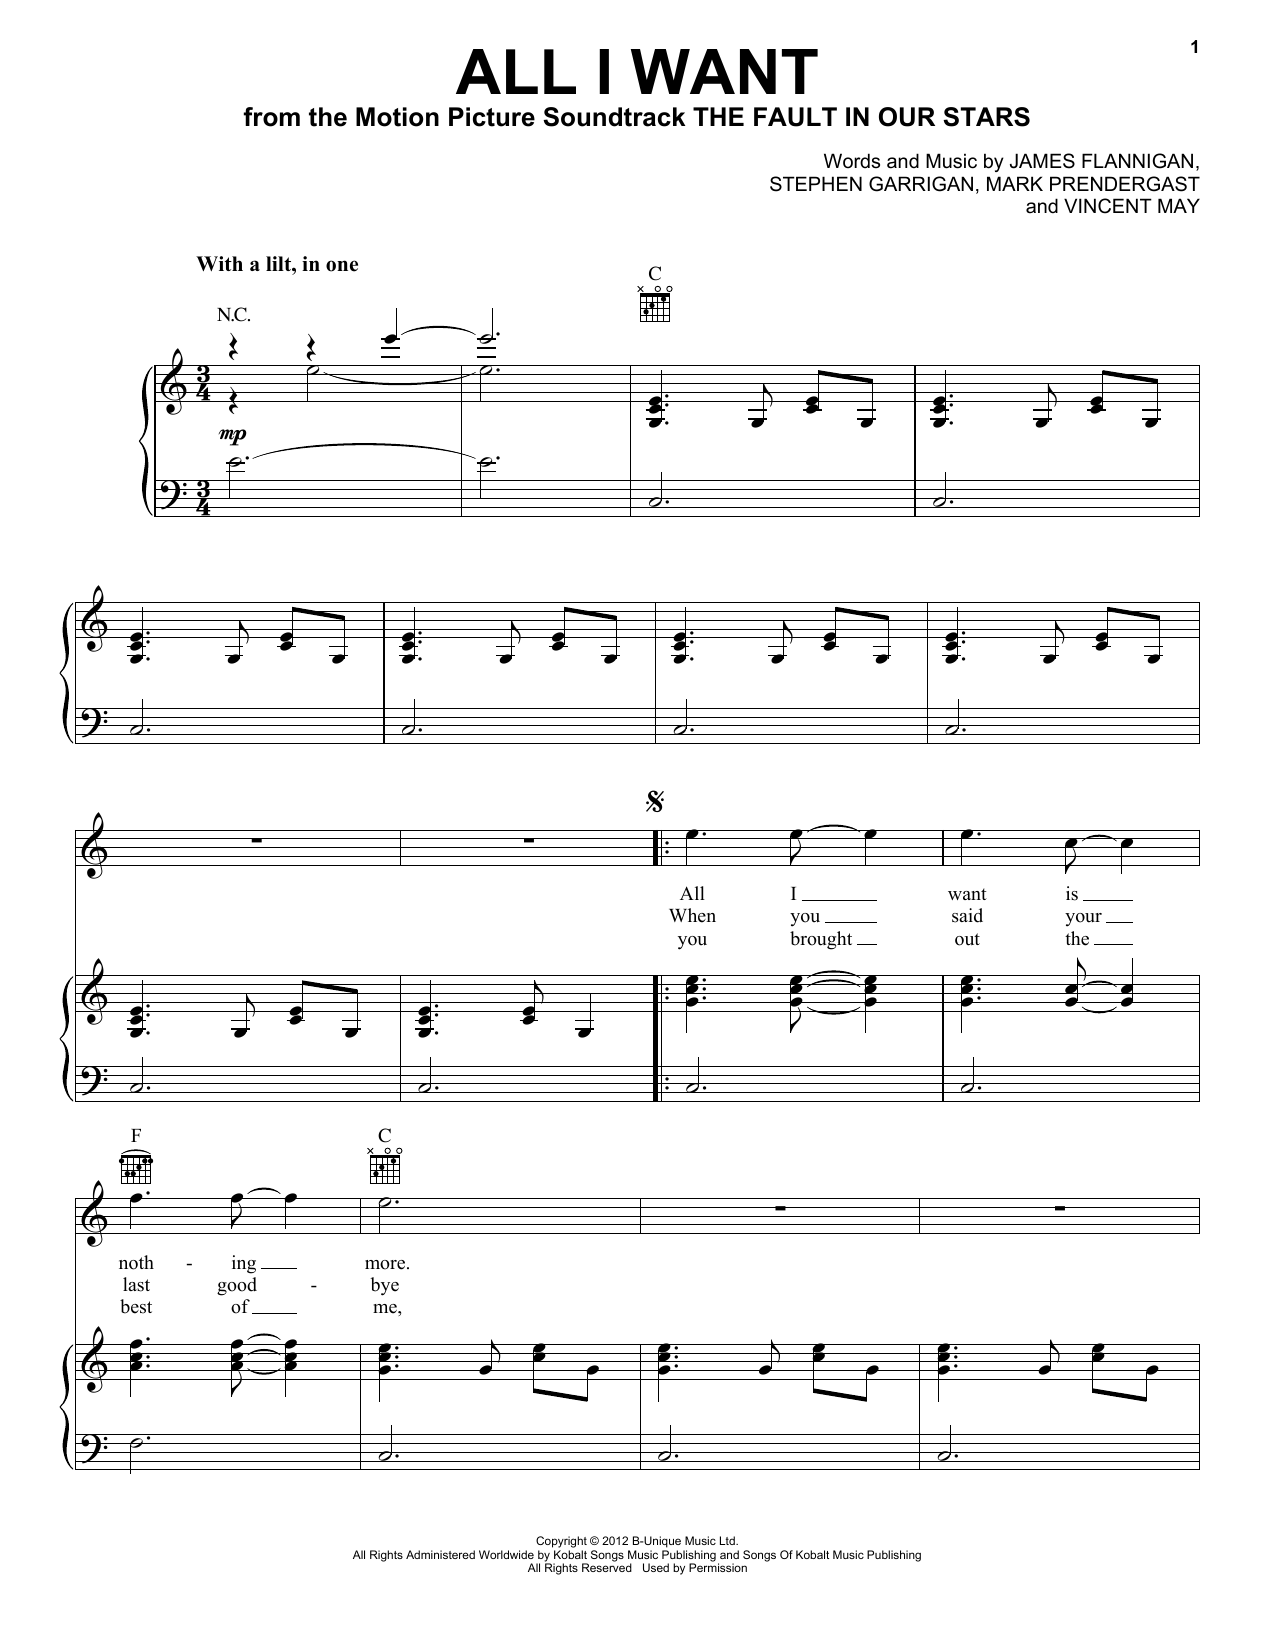 Casio ctk 720 instrukcja digital keyboard tutorials youtube all piano chords play that funky music download i can play piano but cant read music ukulele coldplay viva la vida piano cover sheet music hexwebz Choice Image